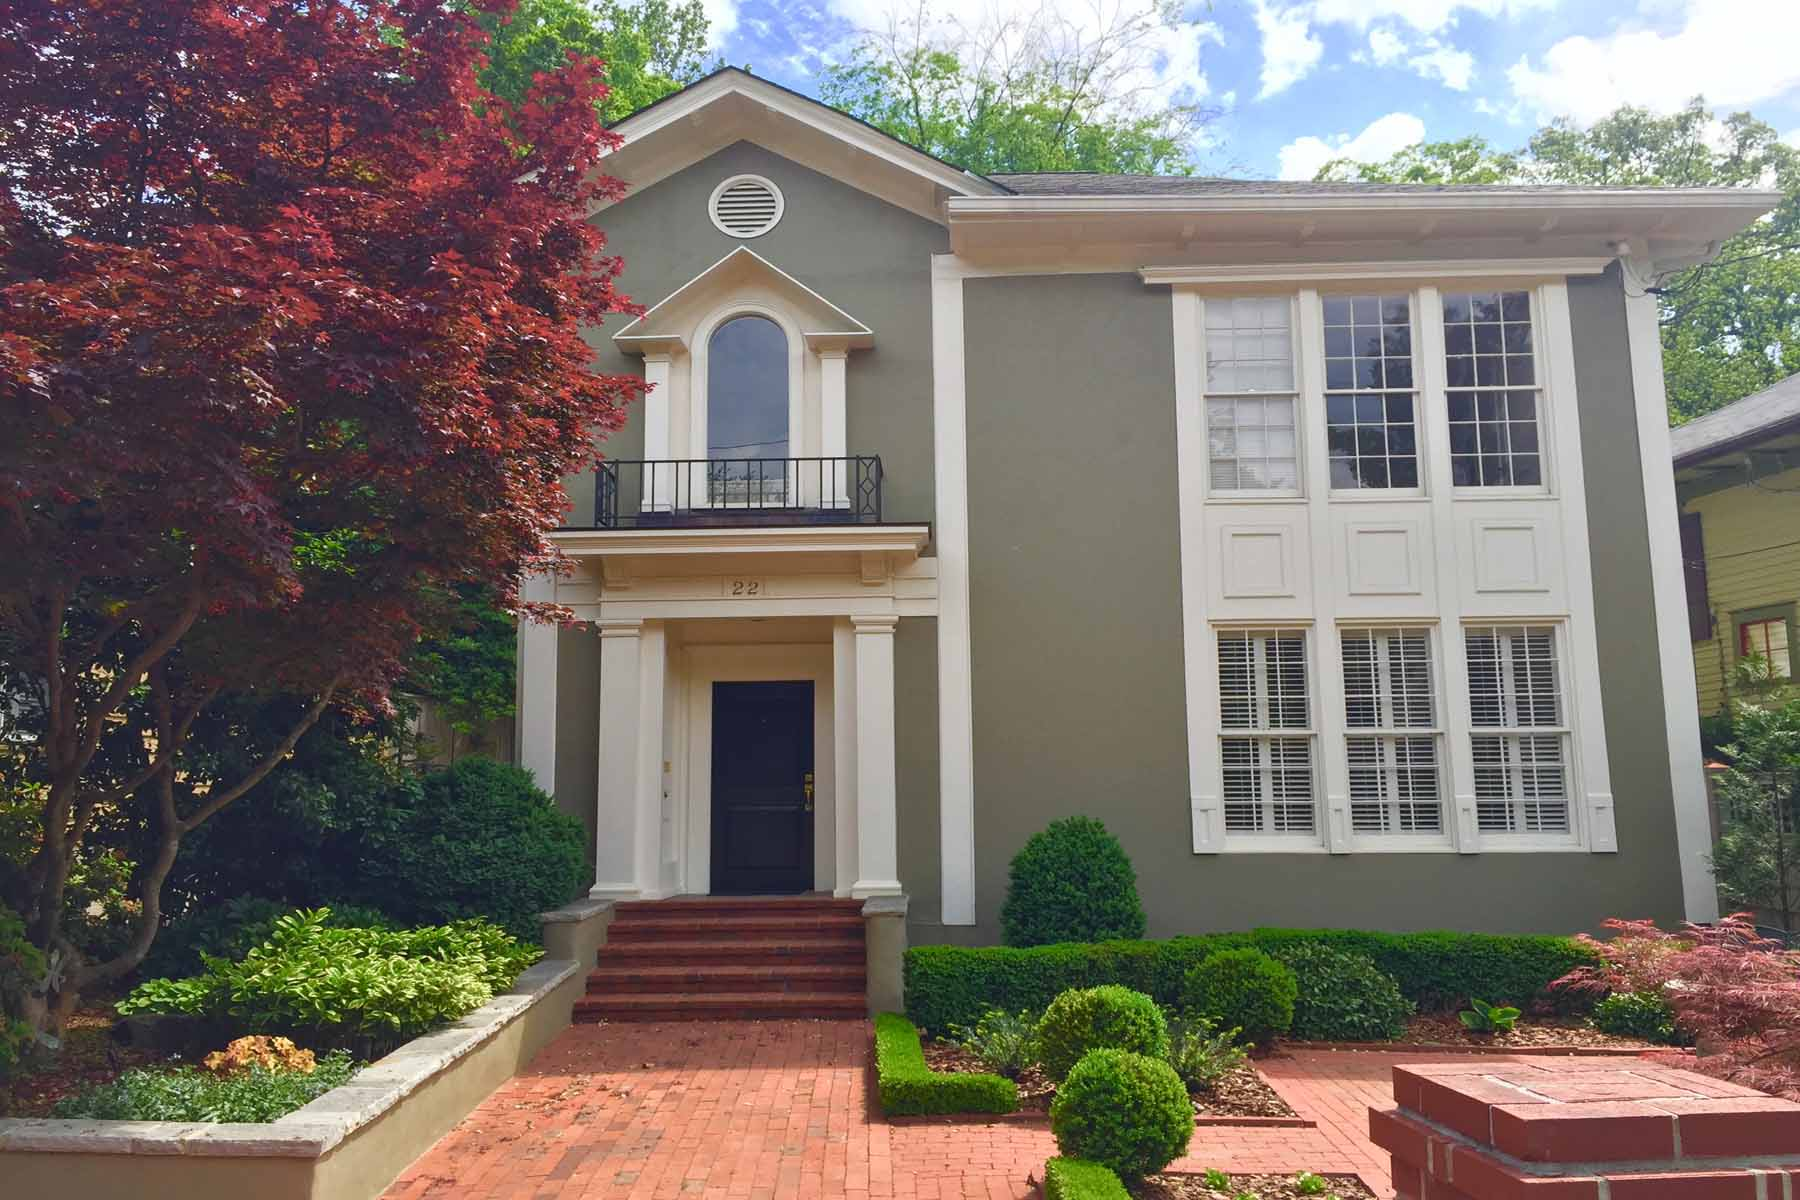 Single Family Home for Sale at Sophisicated Ansley Park home! 22 The Prado NE Ansley Park, Atlanta, Georgia, 30309 United States